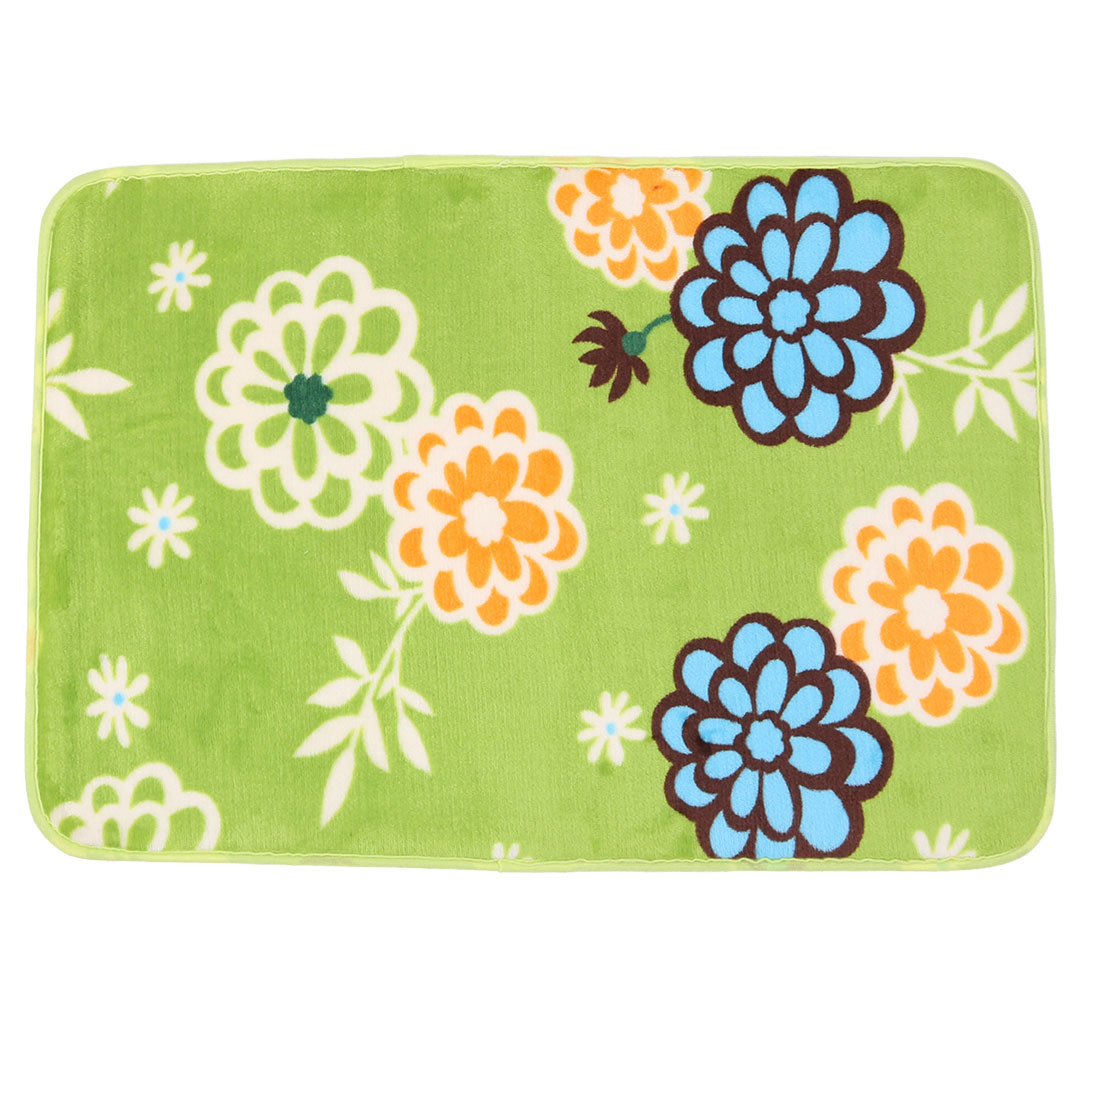 Household Coral Fleece Flower Print Rectangle Washable Floor Carpet Rug Pad Doormat Green